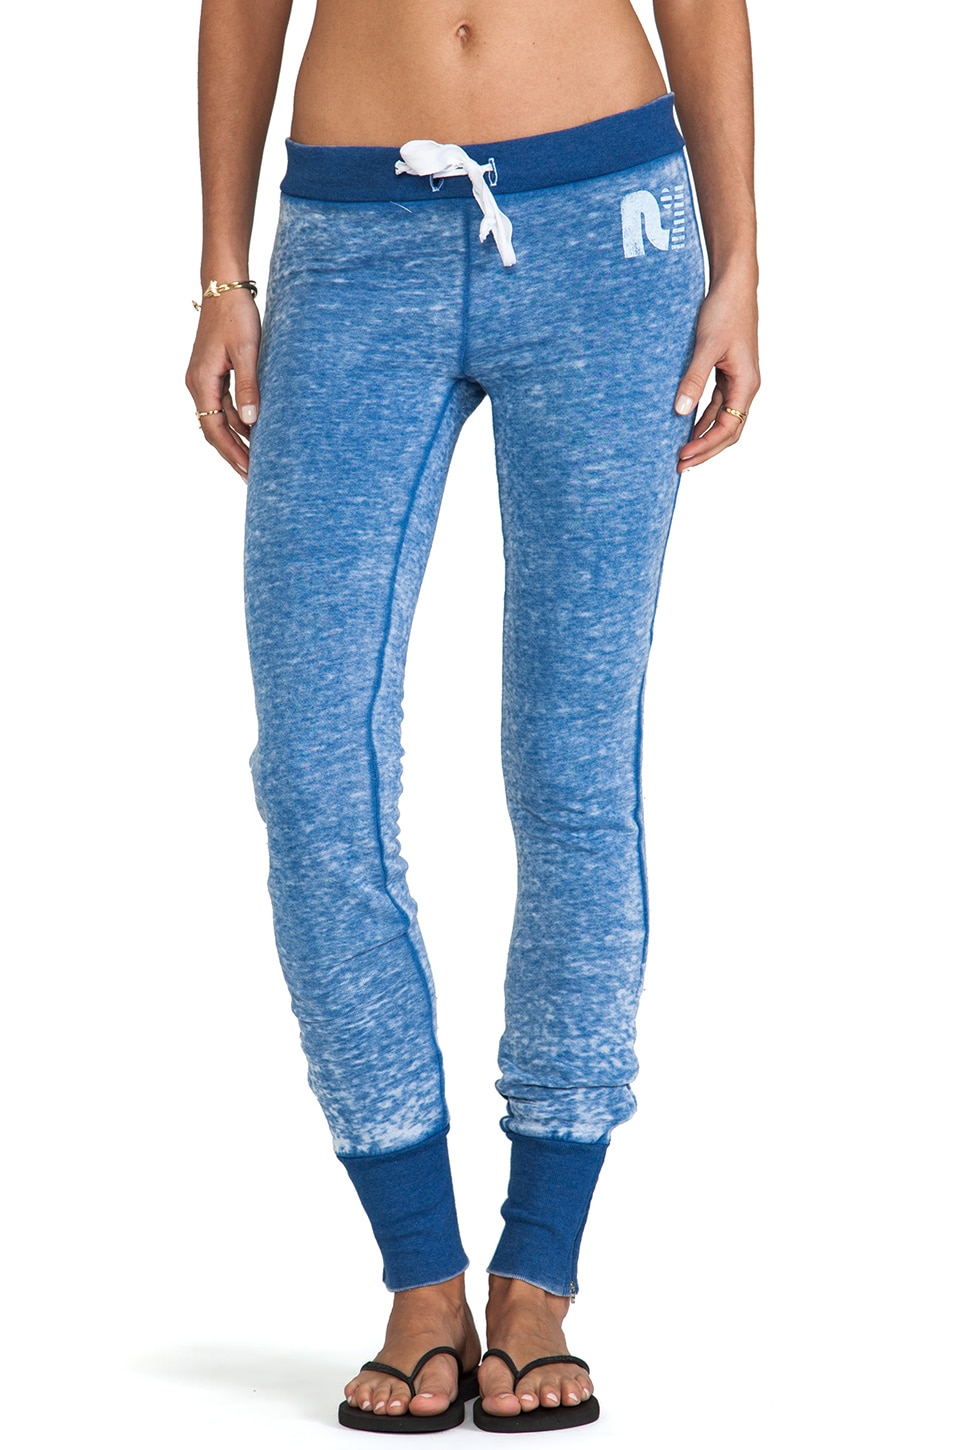 Rebel Yell Skinny Zip Fleece Pants in Vintage Royal